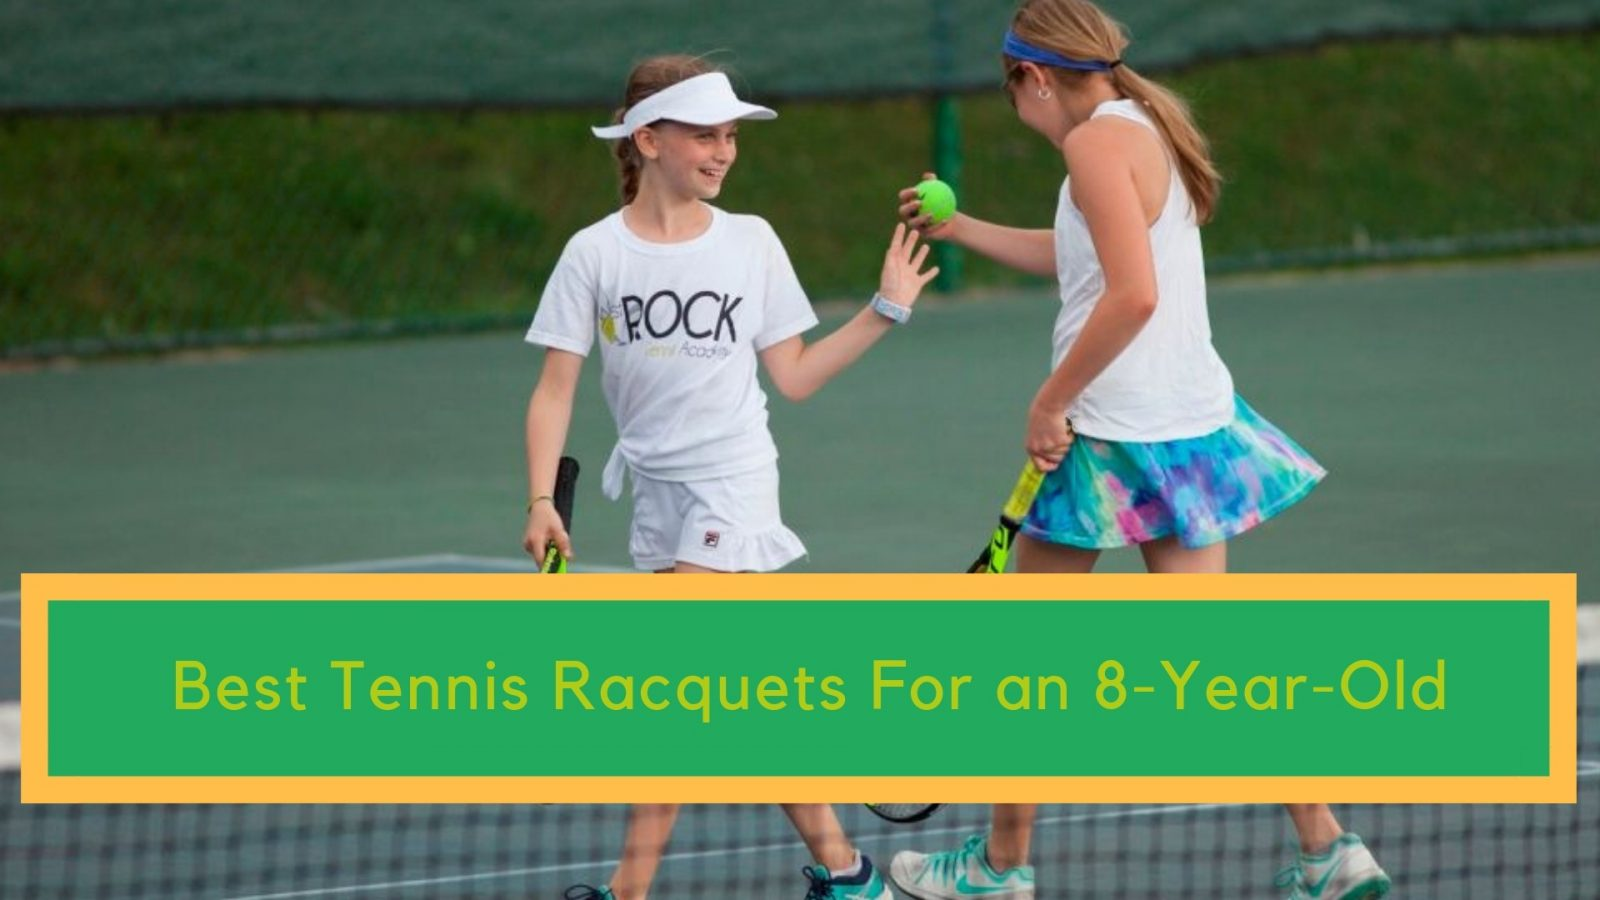 Best Tennis Racquets For an 8-Year-Old. A Guide For Parents